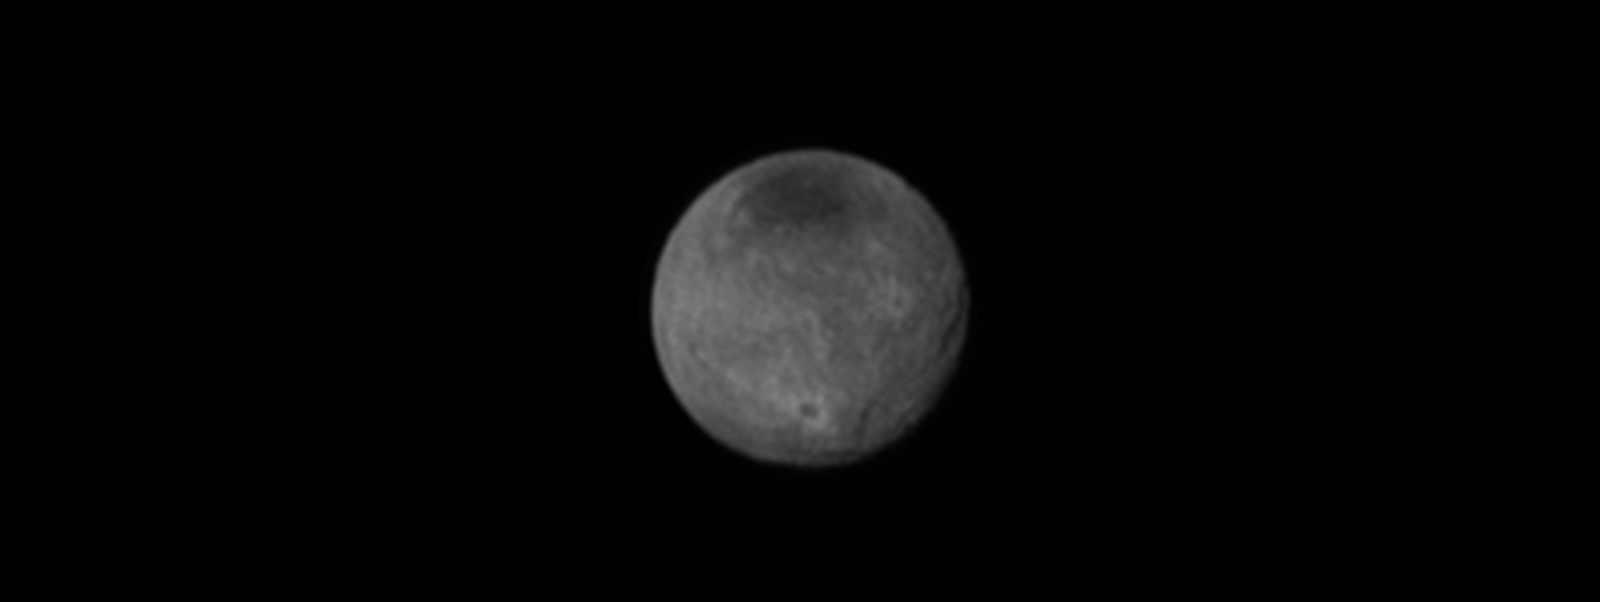 Kerberos Moon Of Plluto: Pluto And Charon Surprise With Chasms, Cliffs And Craters